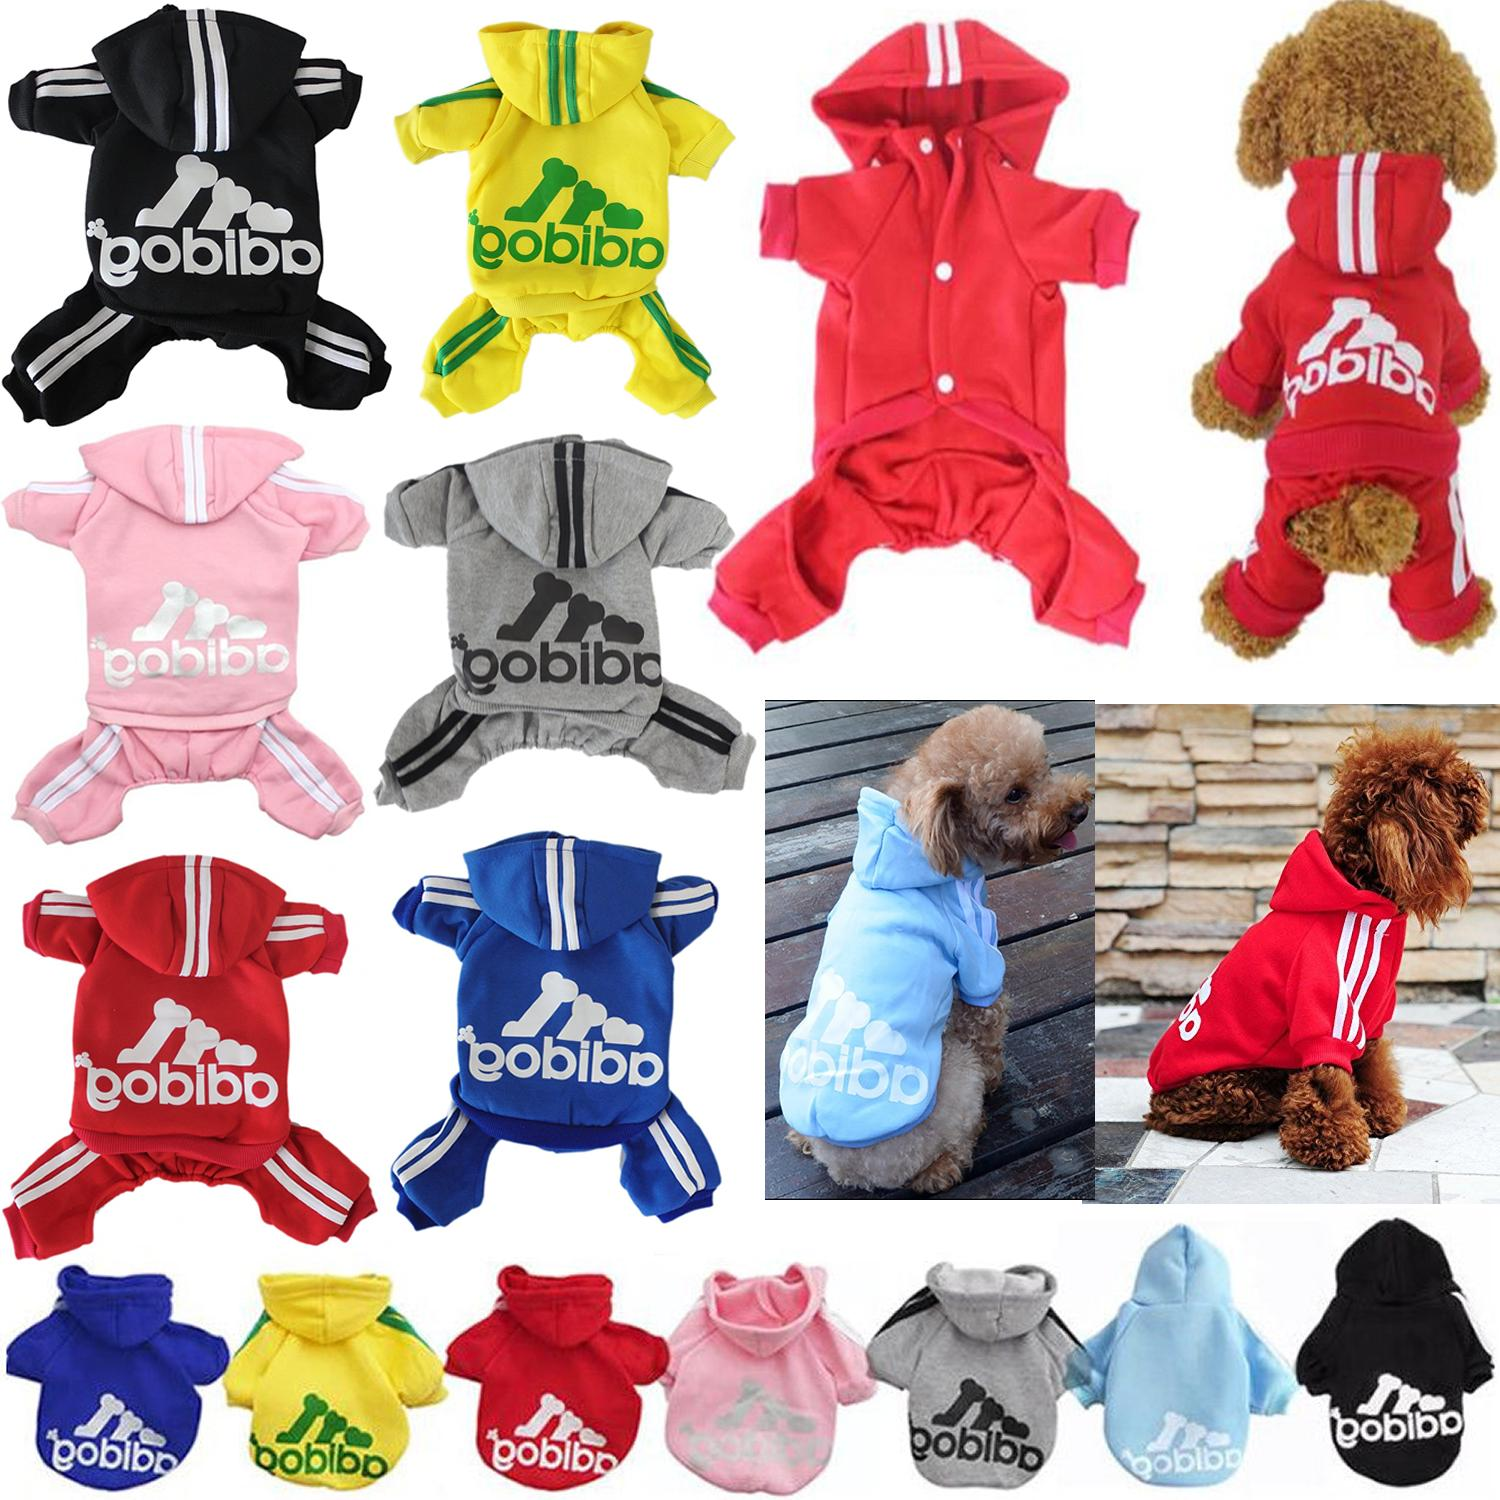 adidog pet clothes for dog cat puppy